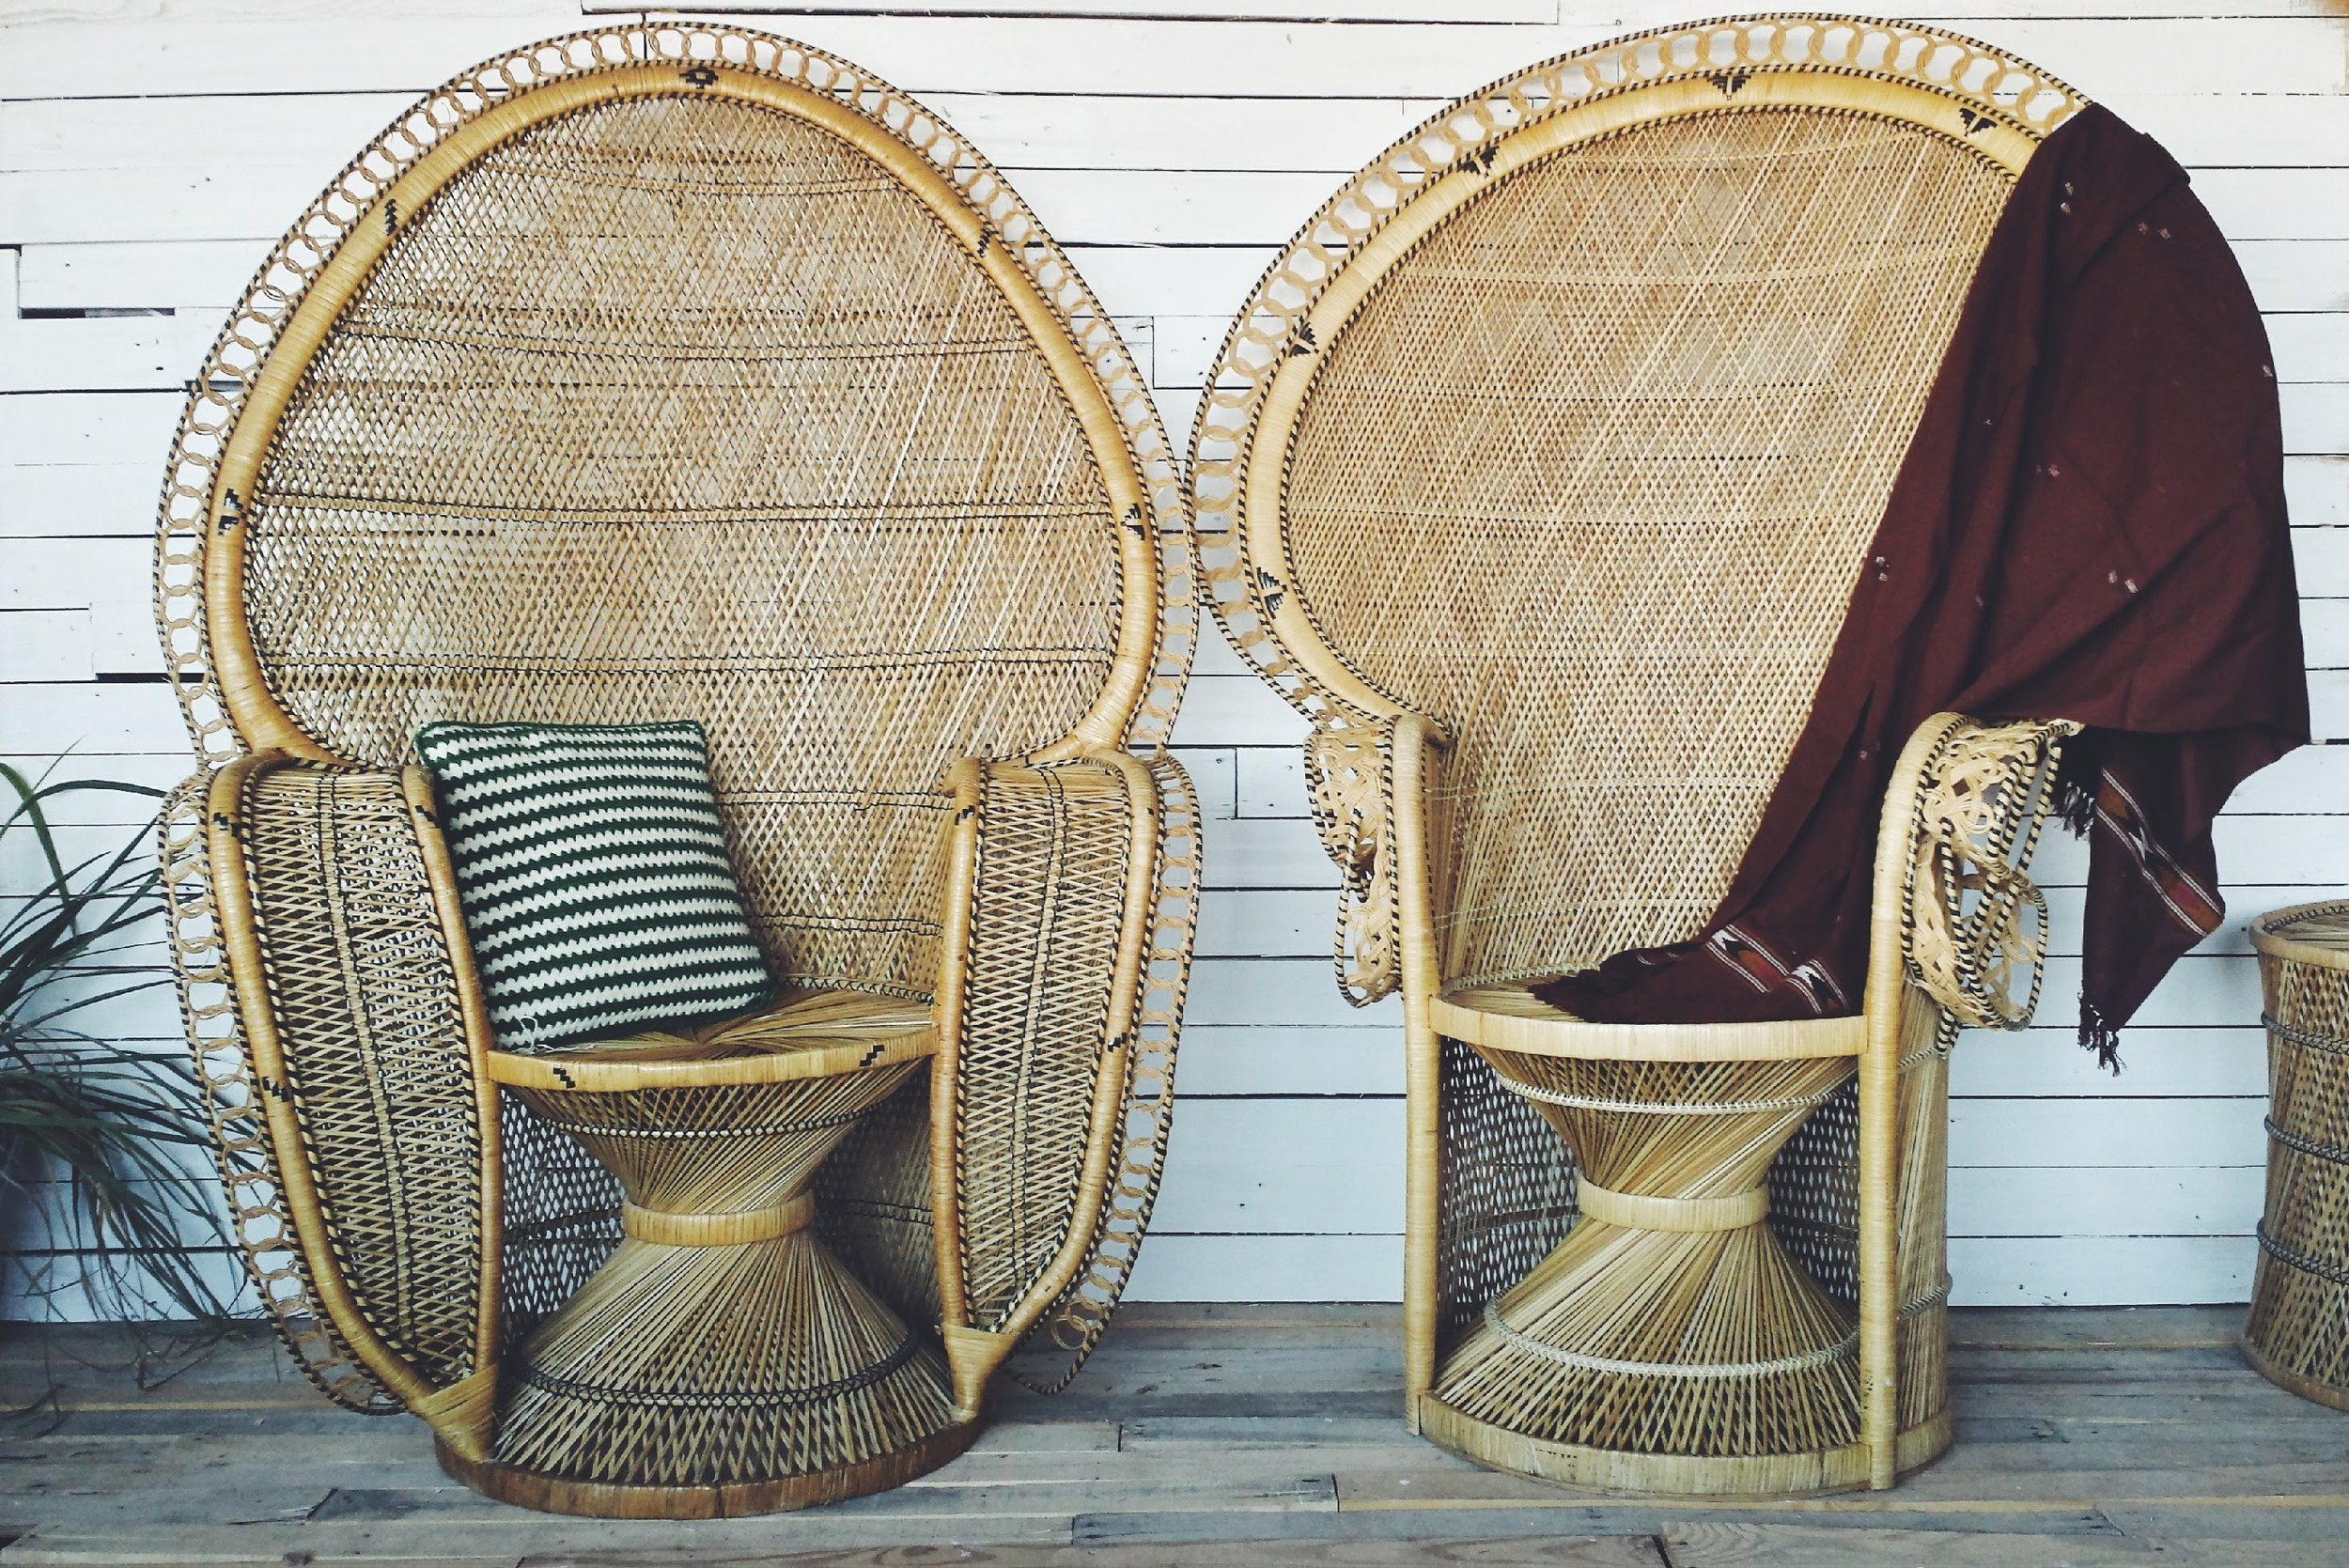 Rent both the Goddess Peacock Chair and the Shaman Peacock Chair for $400 + delivery/pickup. To inquire about renting this item and for a delivery/pickup quote please email millerislandcompany@gmail.com or call/text Travis at 647-462-7438.